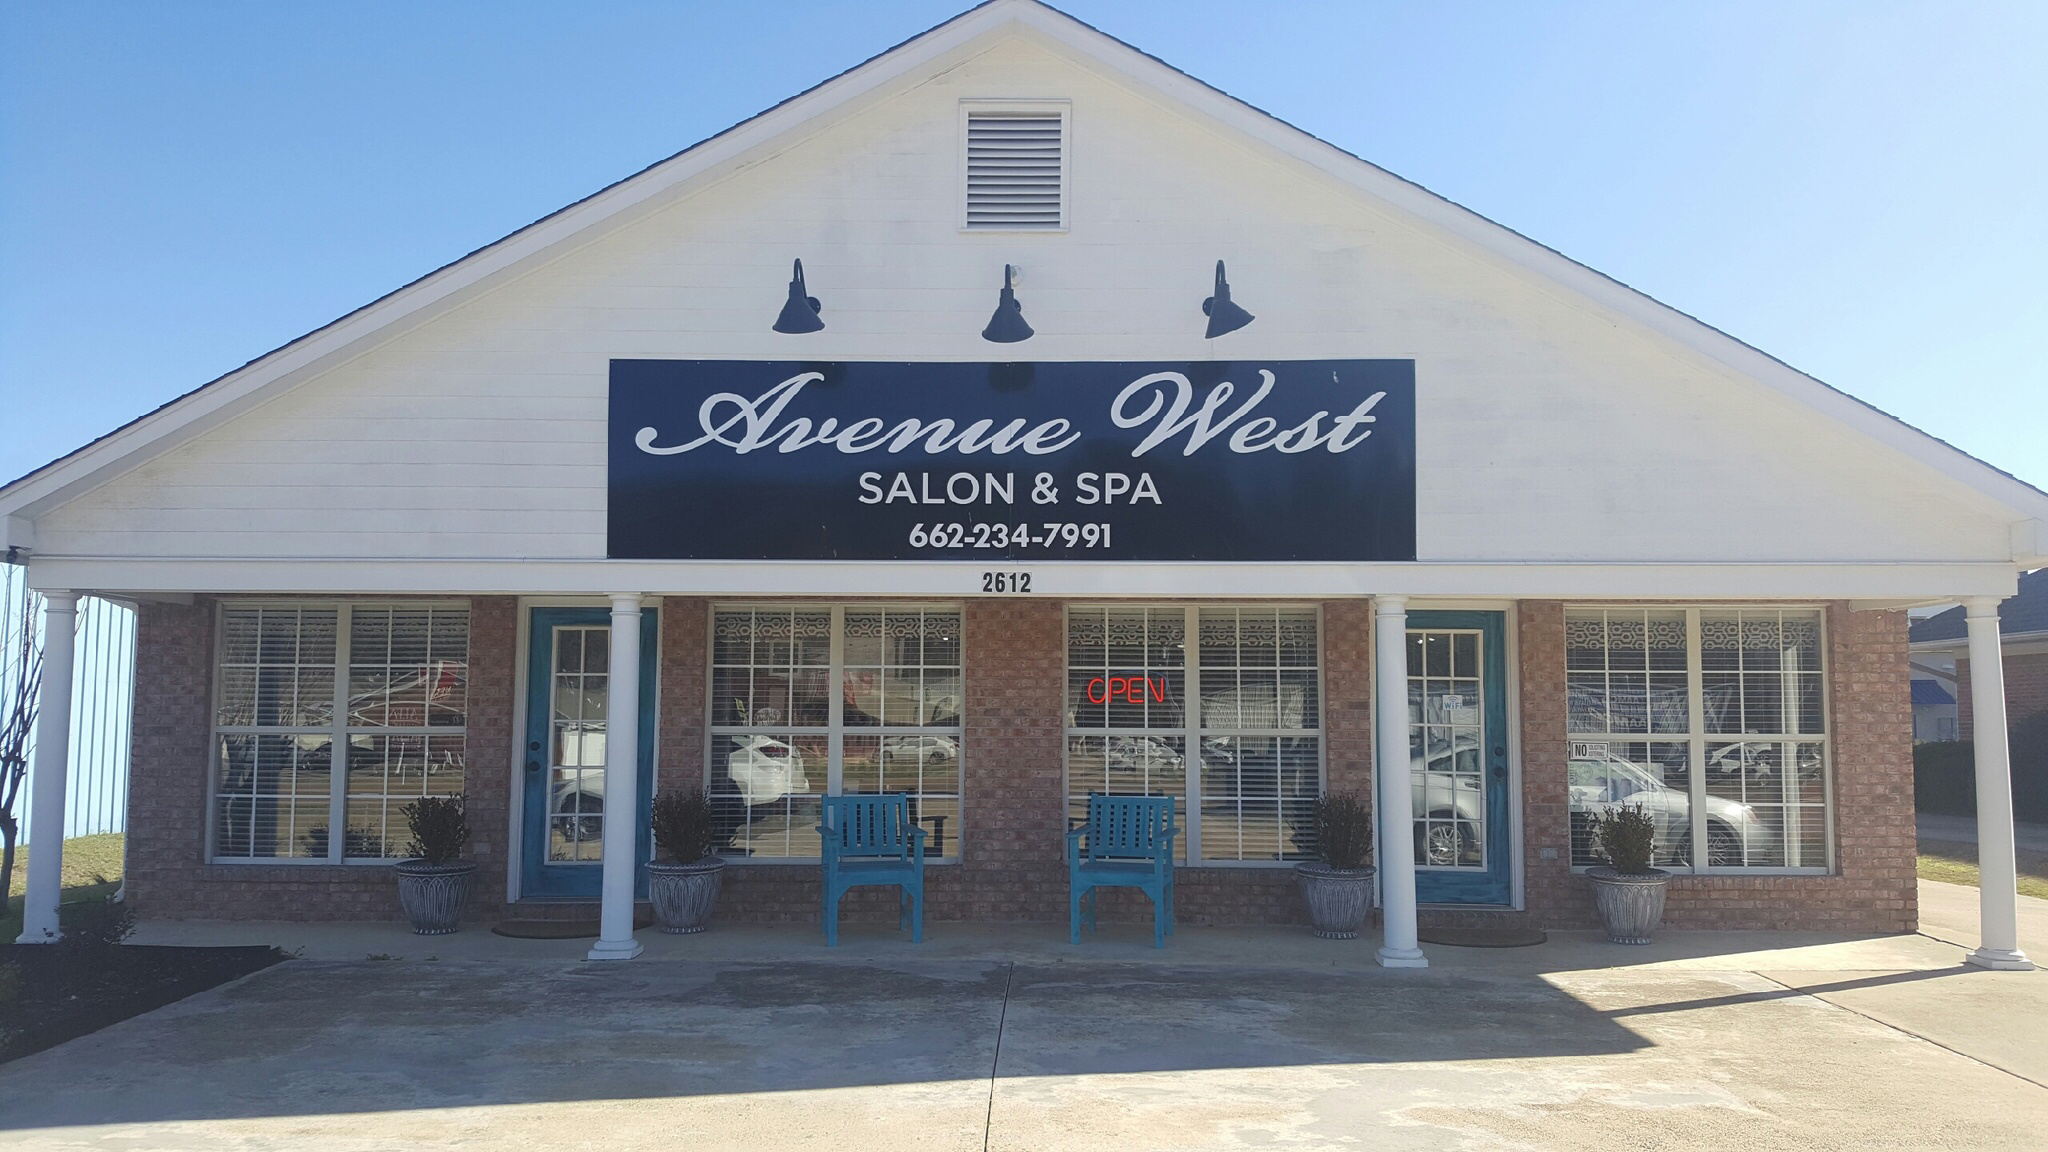 Avenue West Salon And Spa 2612 W Oxford Loop Oxford Ms 38655 Yp